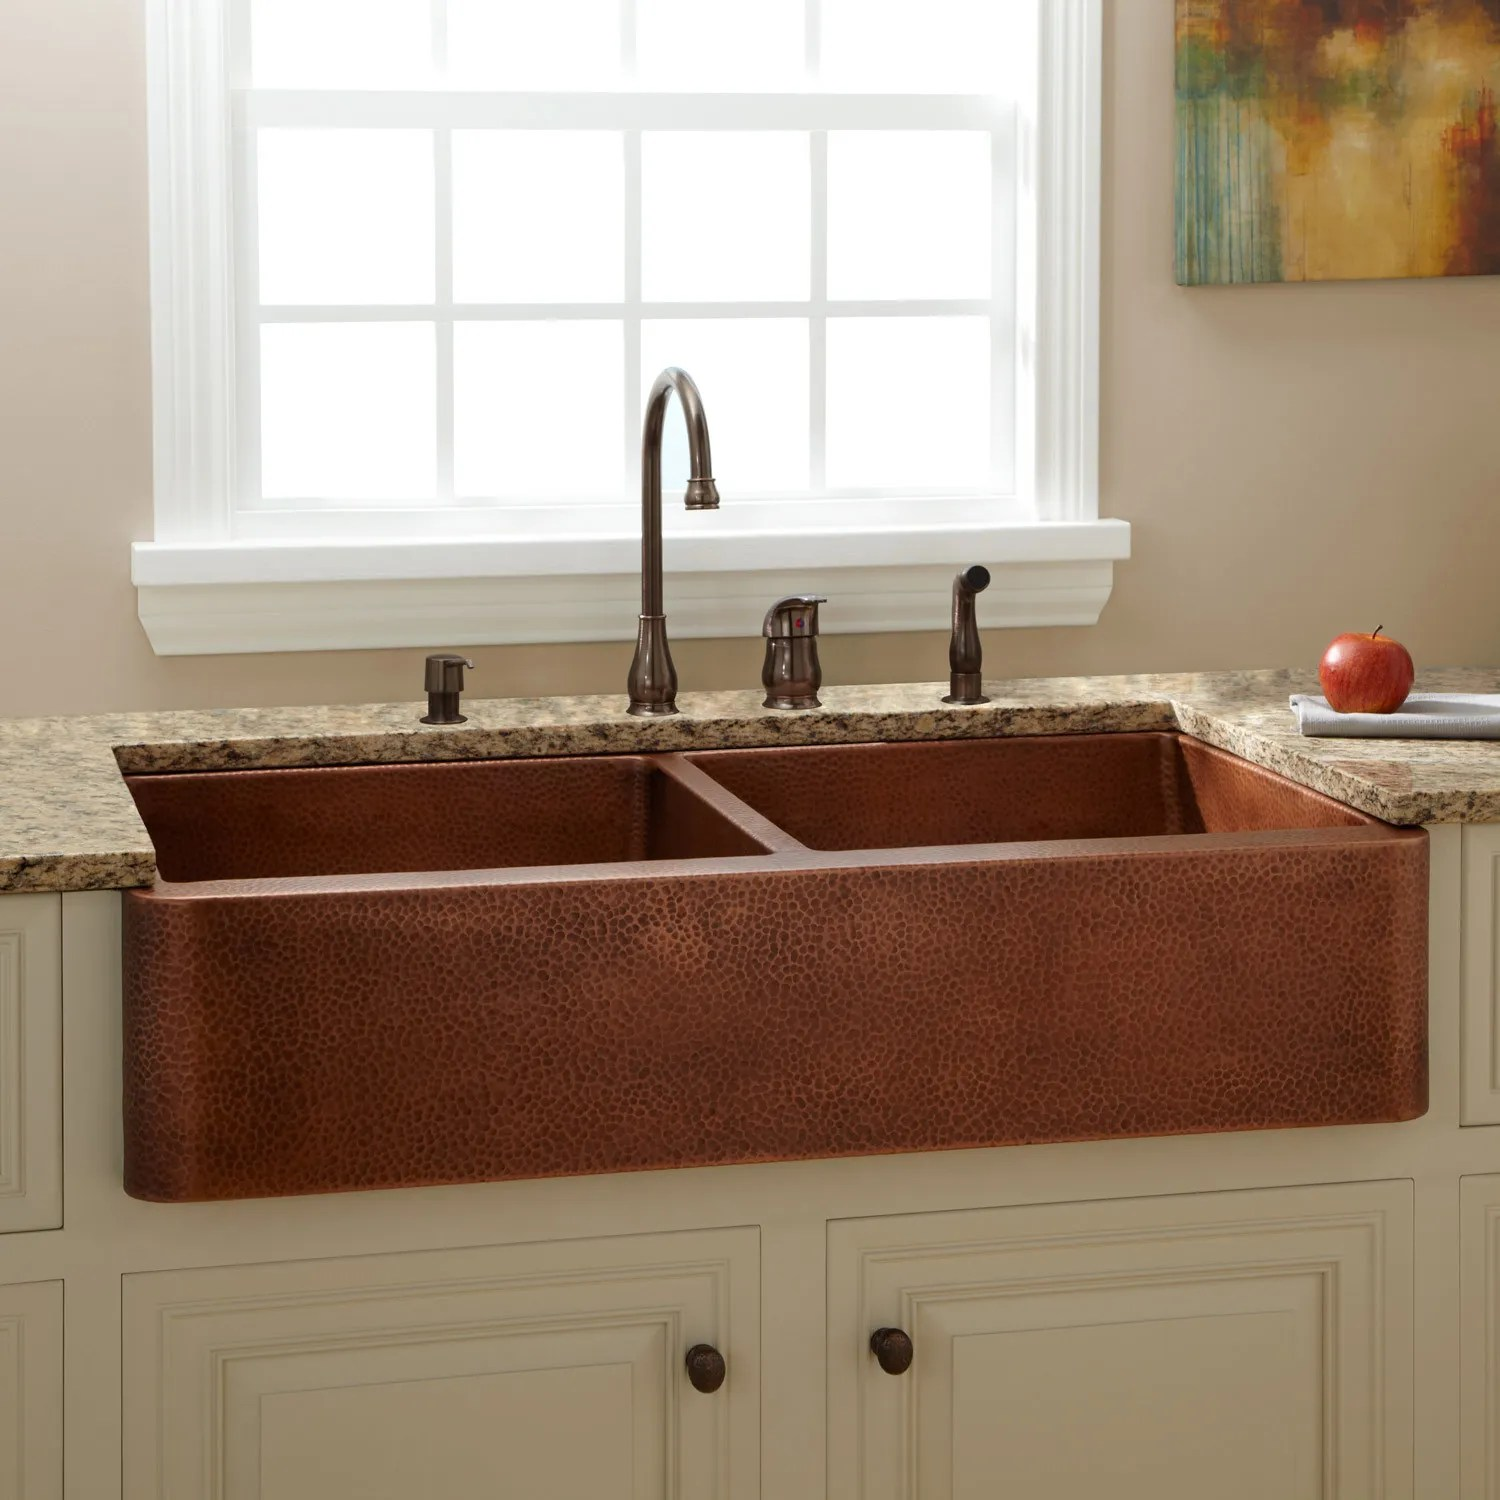 42 Fiona Double Bowl Hammered Copper Farmhouse Sink Kitchen